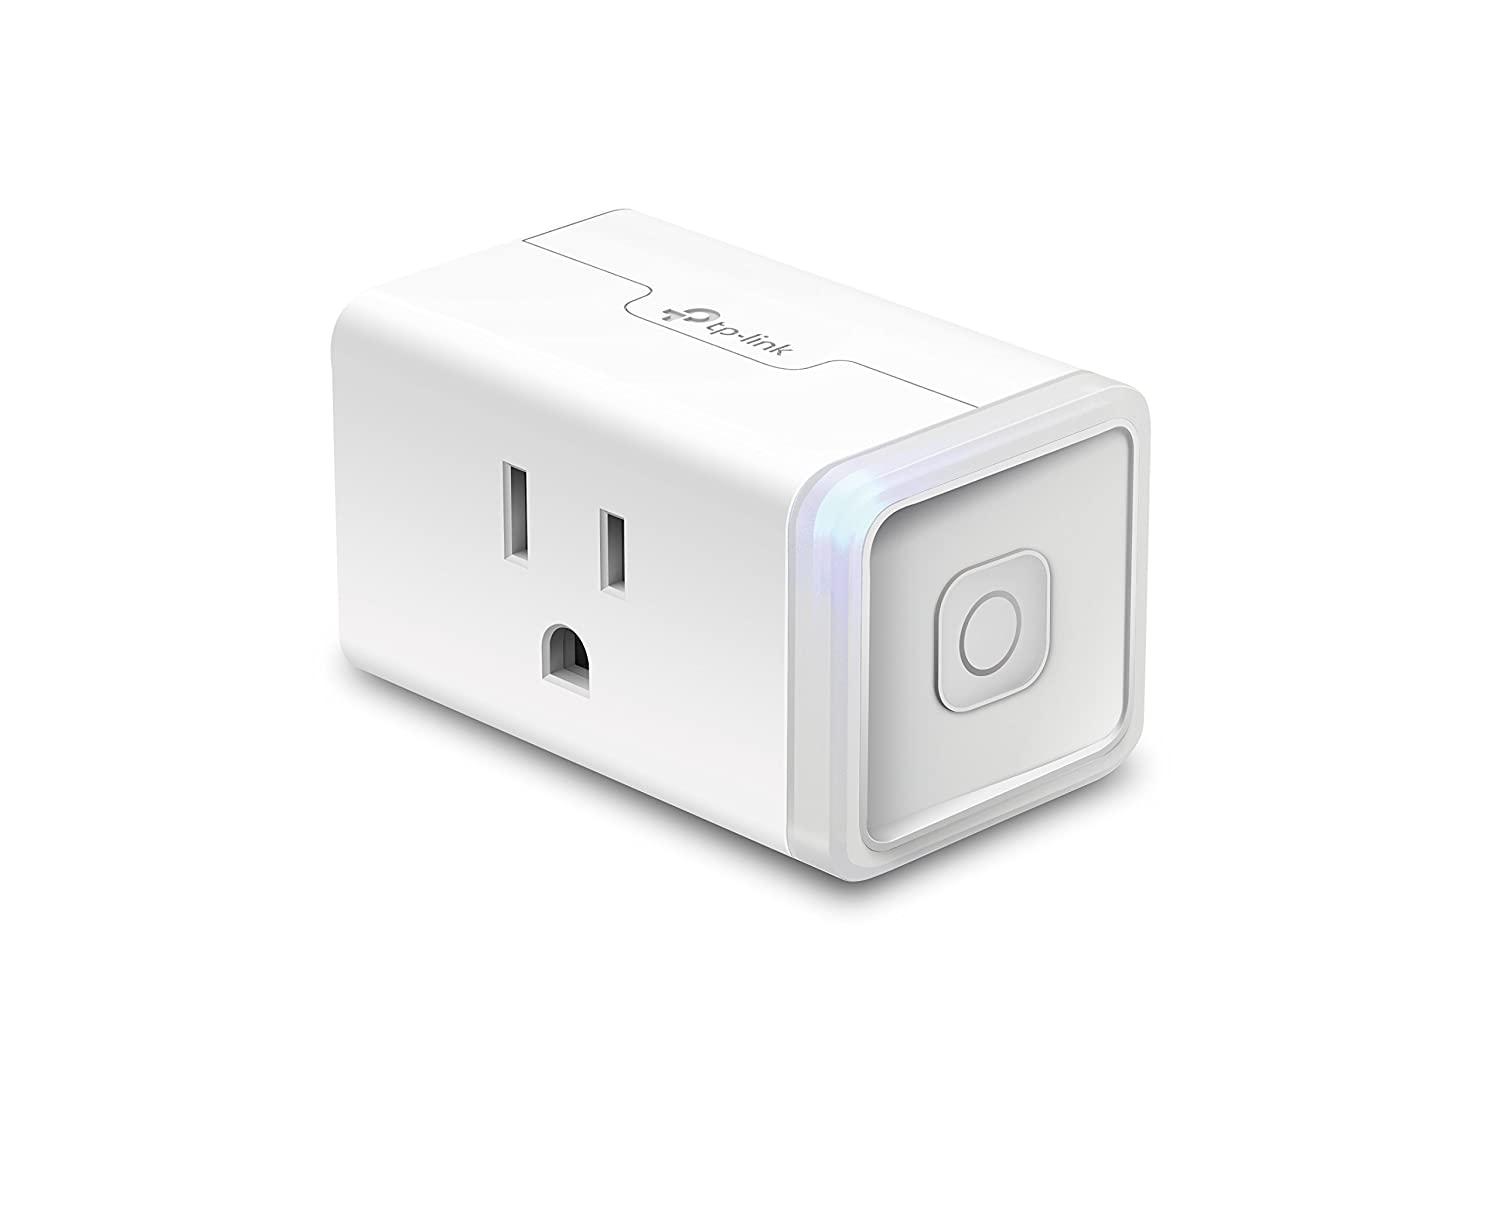 Kasa smart socket